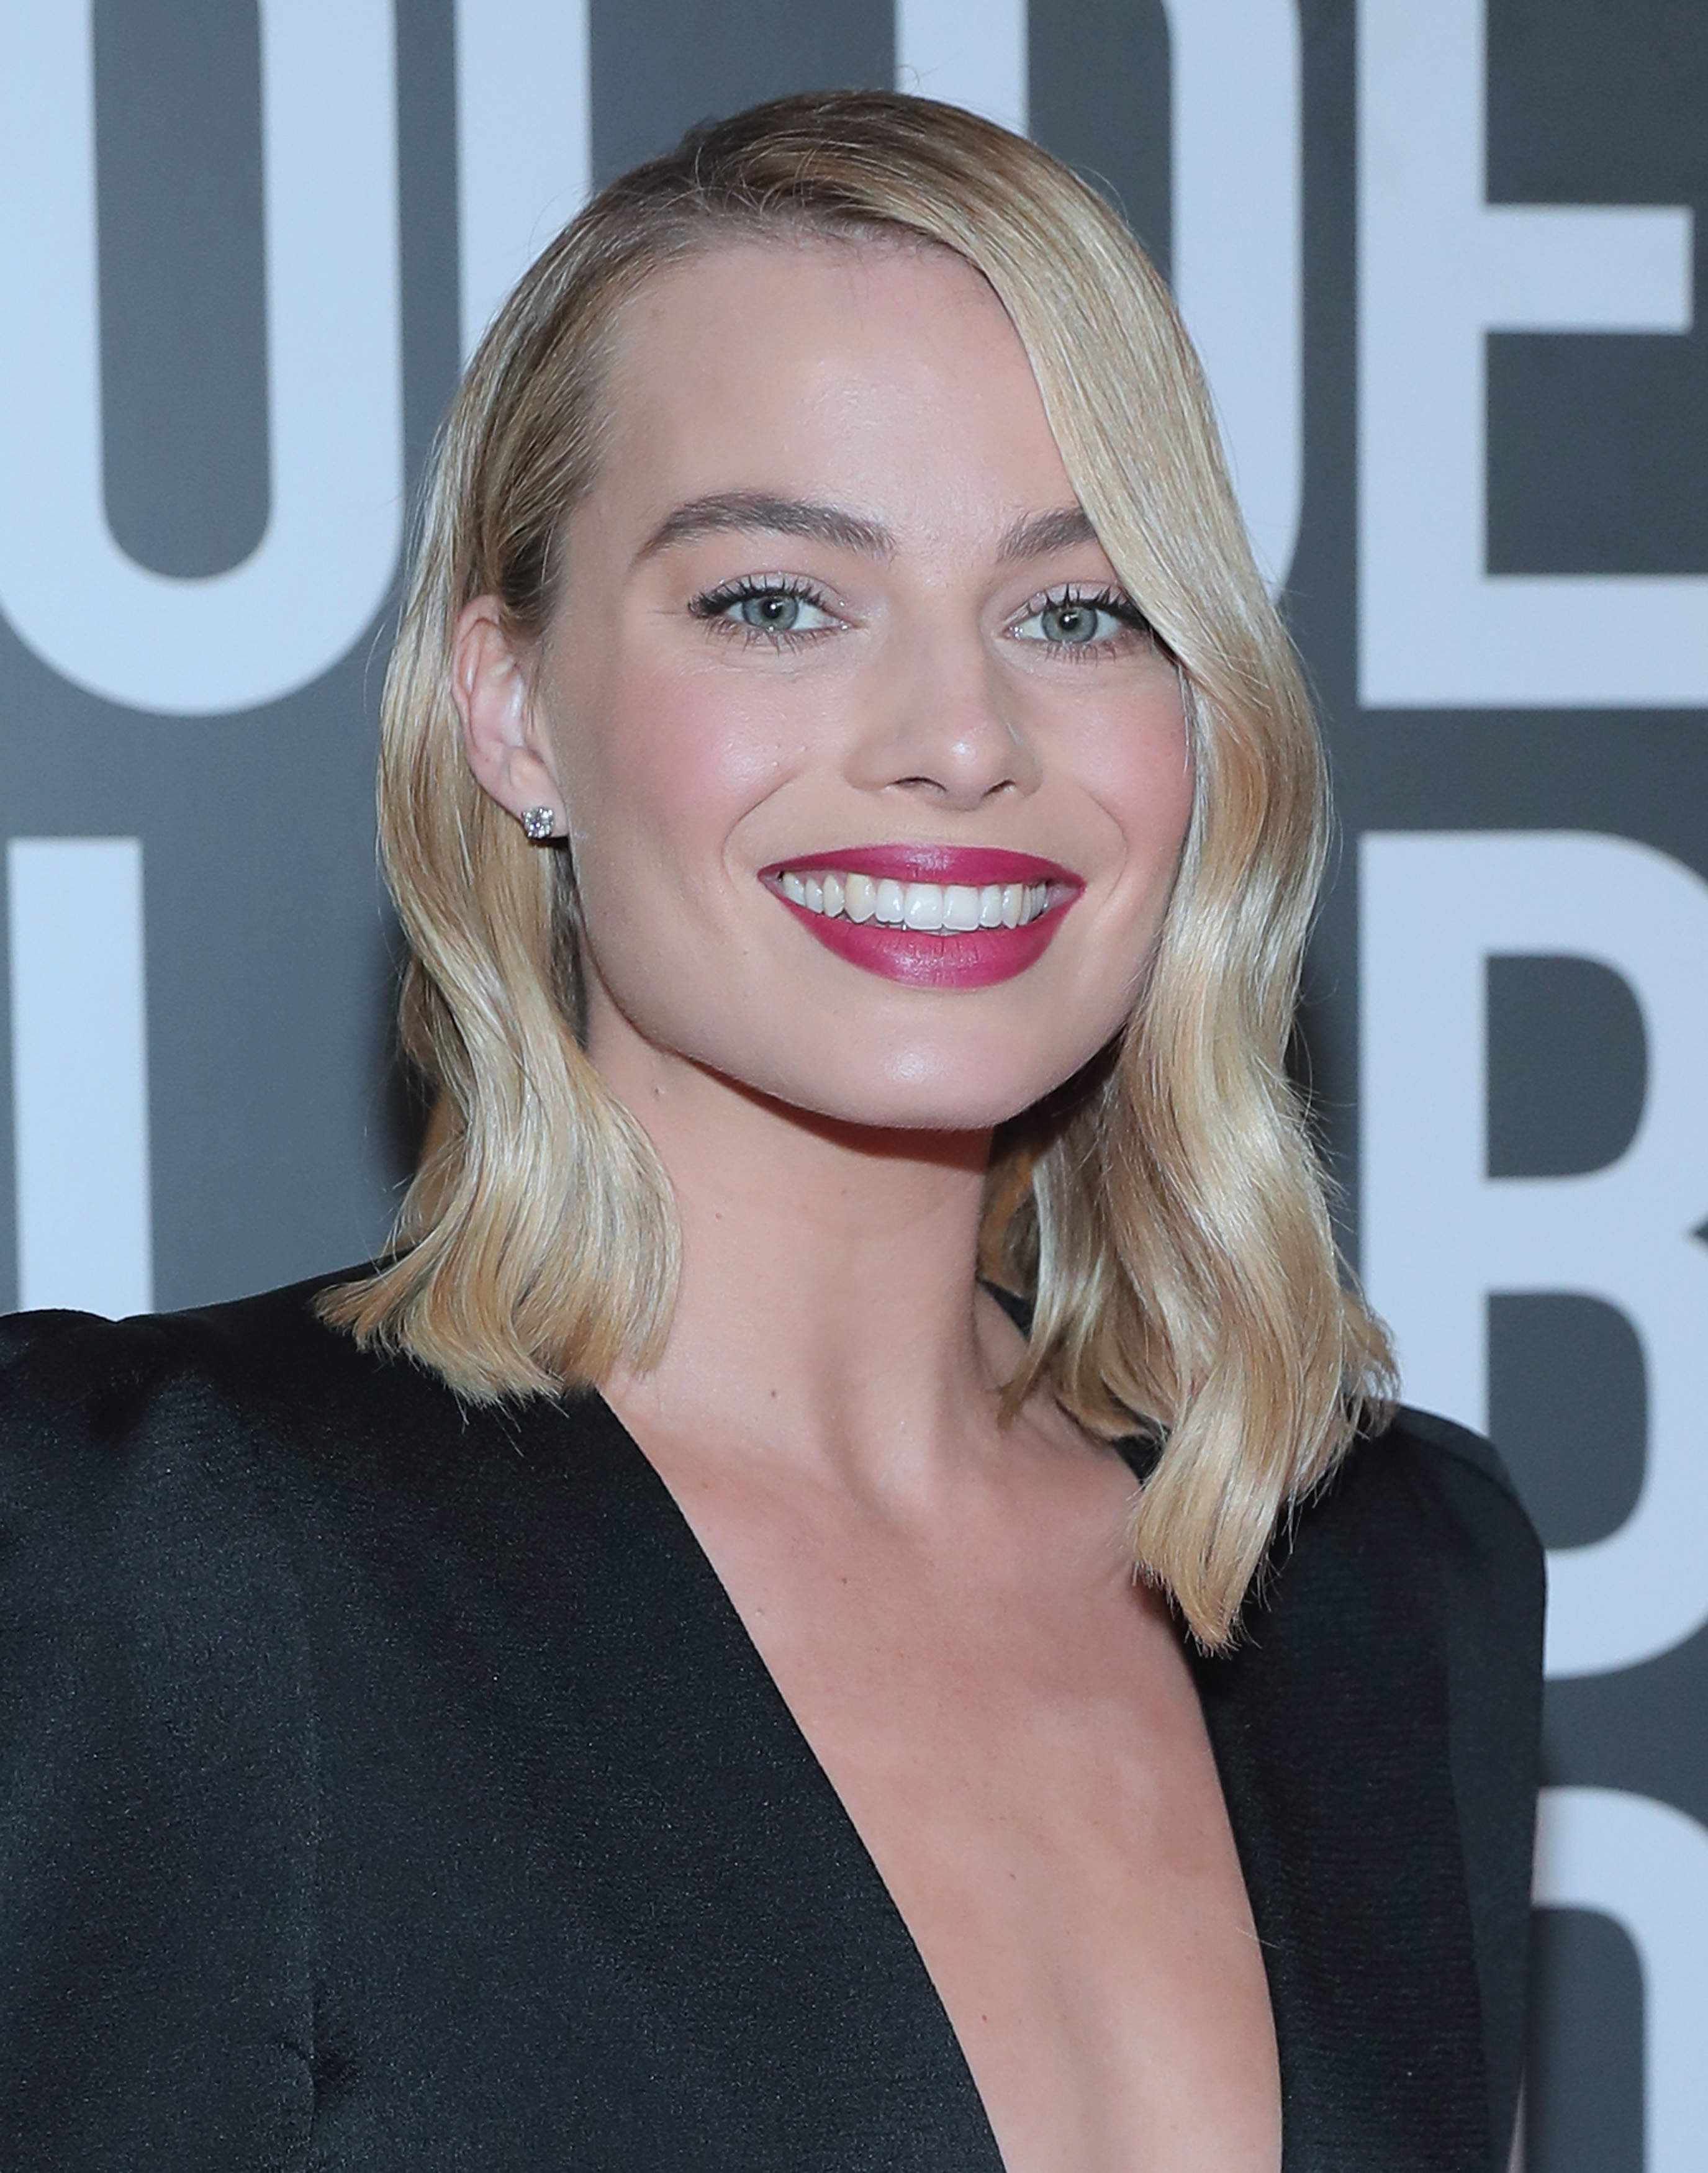 TEAM EFFORT: Margot Robbie at the 75th annual Golden Globe Awards with color by Tracey Cunningham and style by Bryce Scarlett.